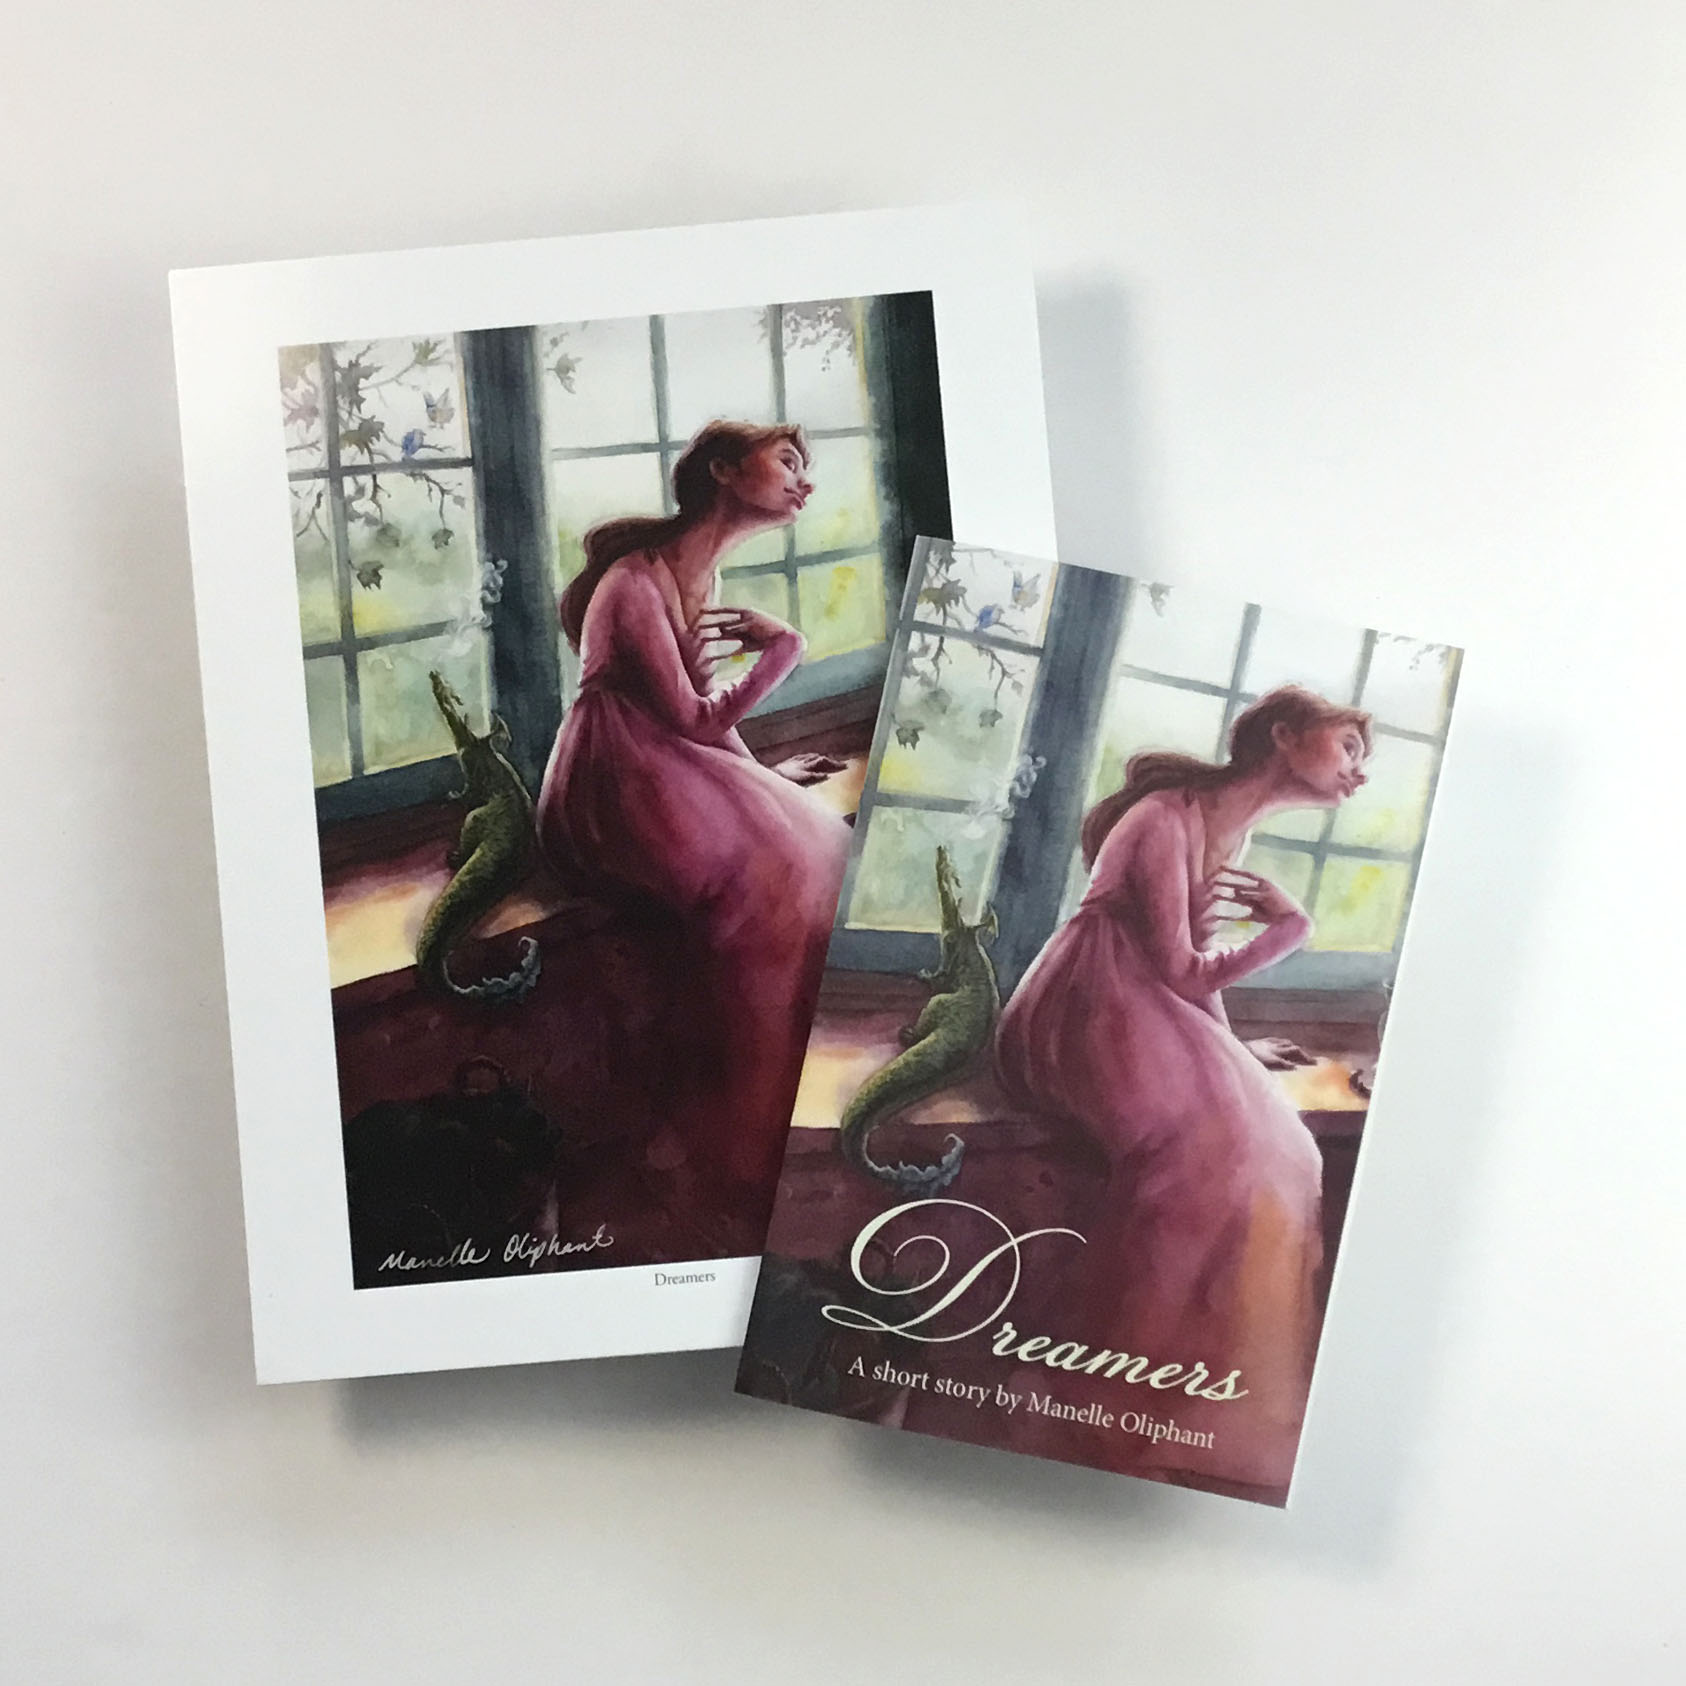 Dreamers Print and Minibook